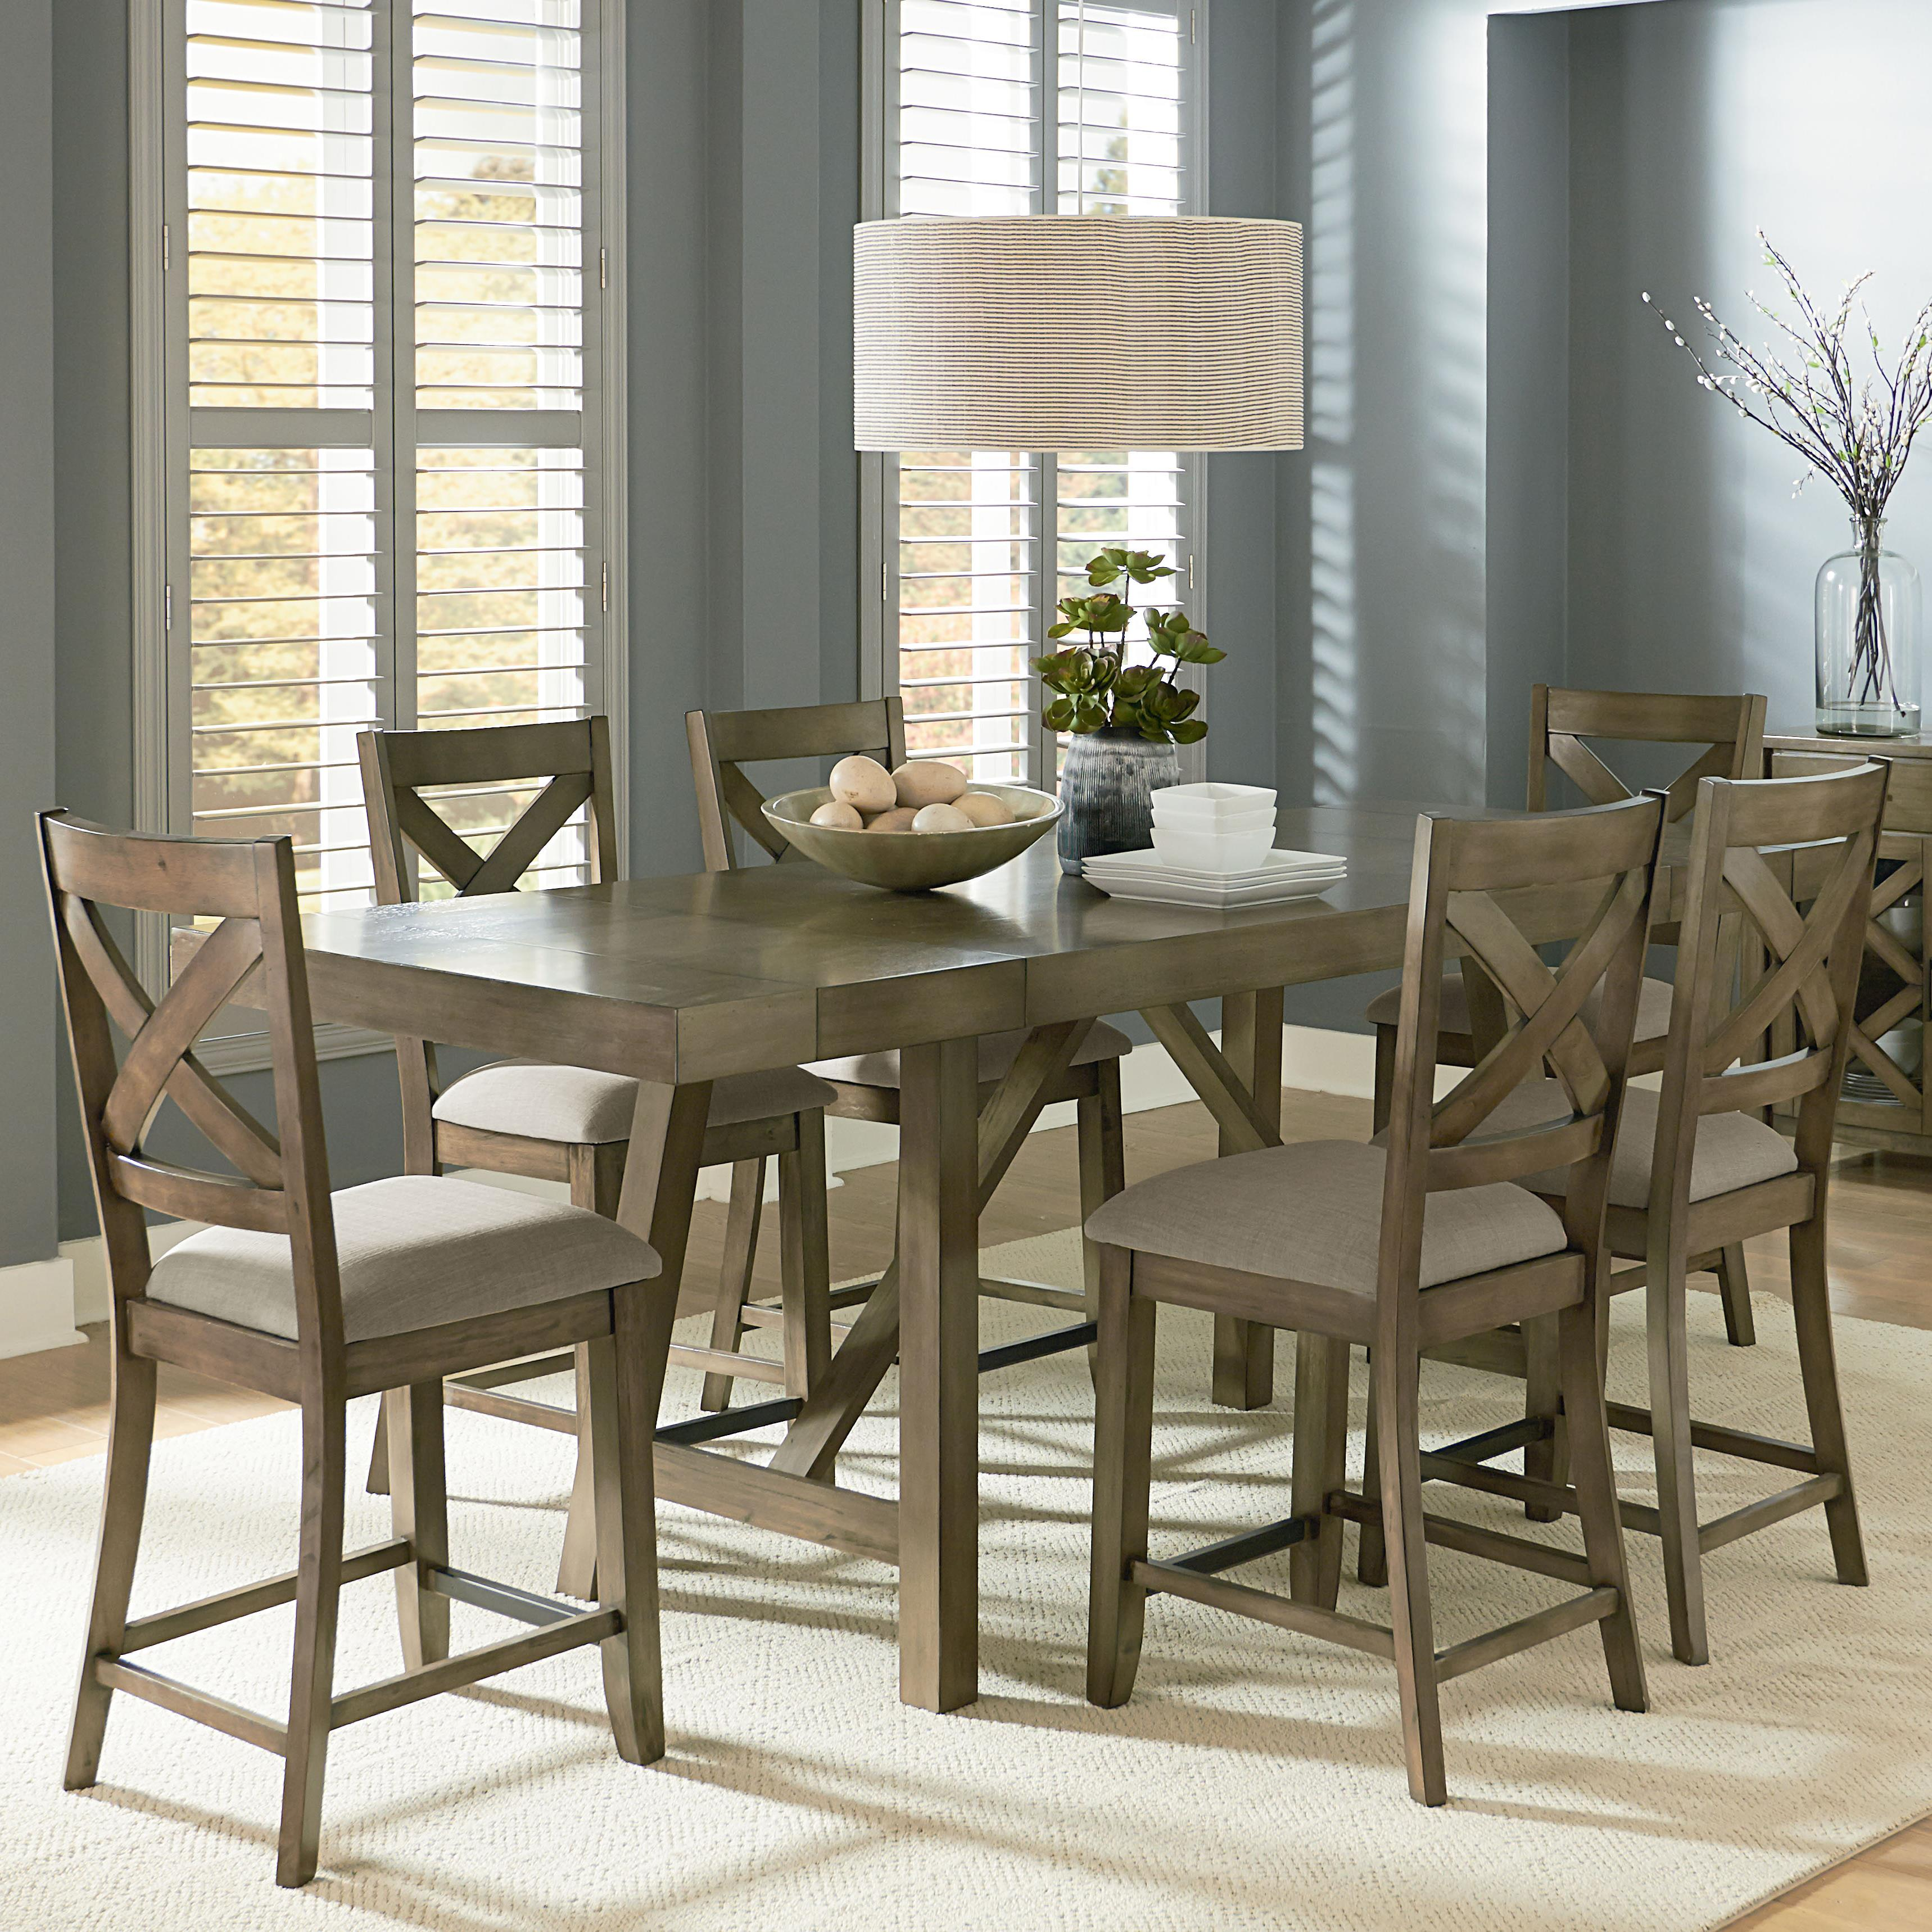 Counter height 7 piece dining room table set by standard for What size dining table for 10x12 room